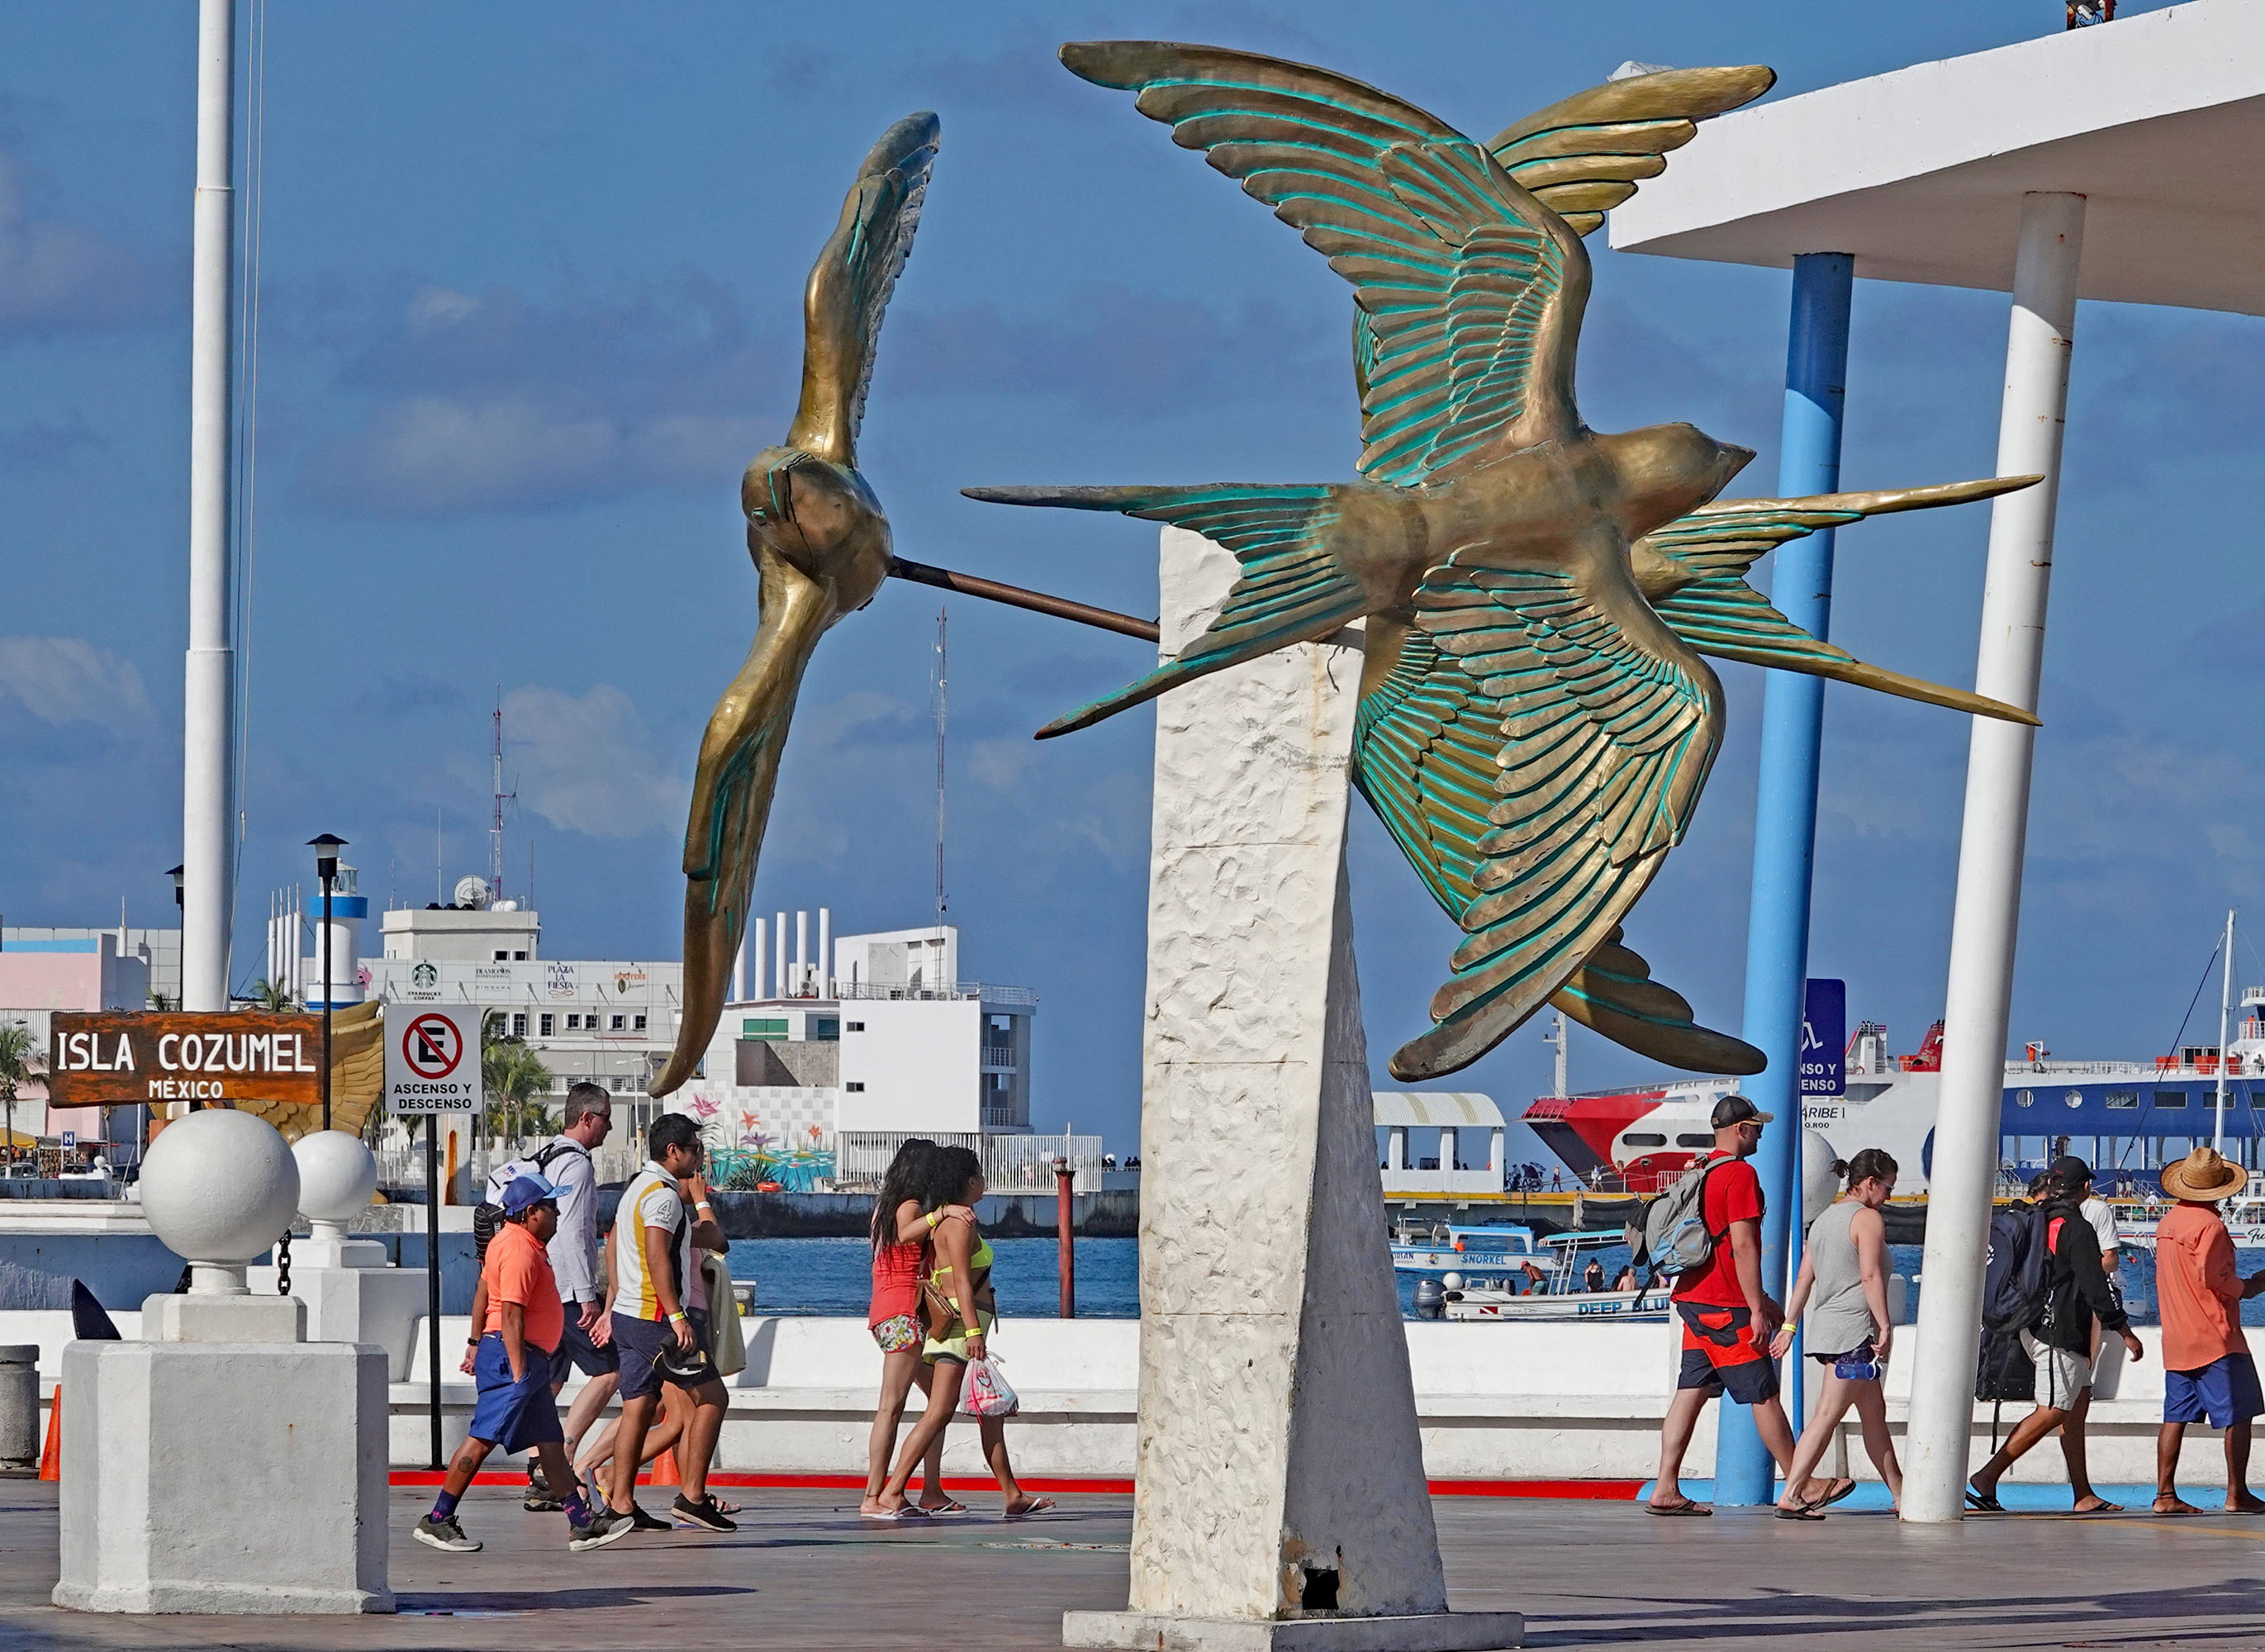 People stroll past Cozumel Island's downtown monument to the island's swallows, while preparing to board ferries to the Mexican mainland, Playa del Carmen. Photo: Fred Swegles